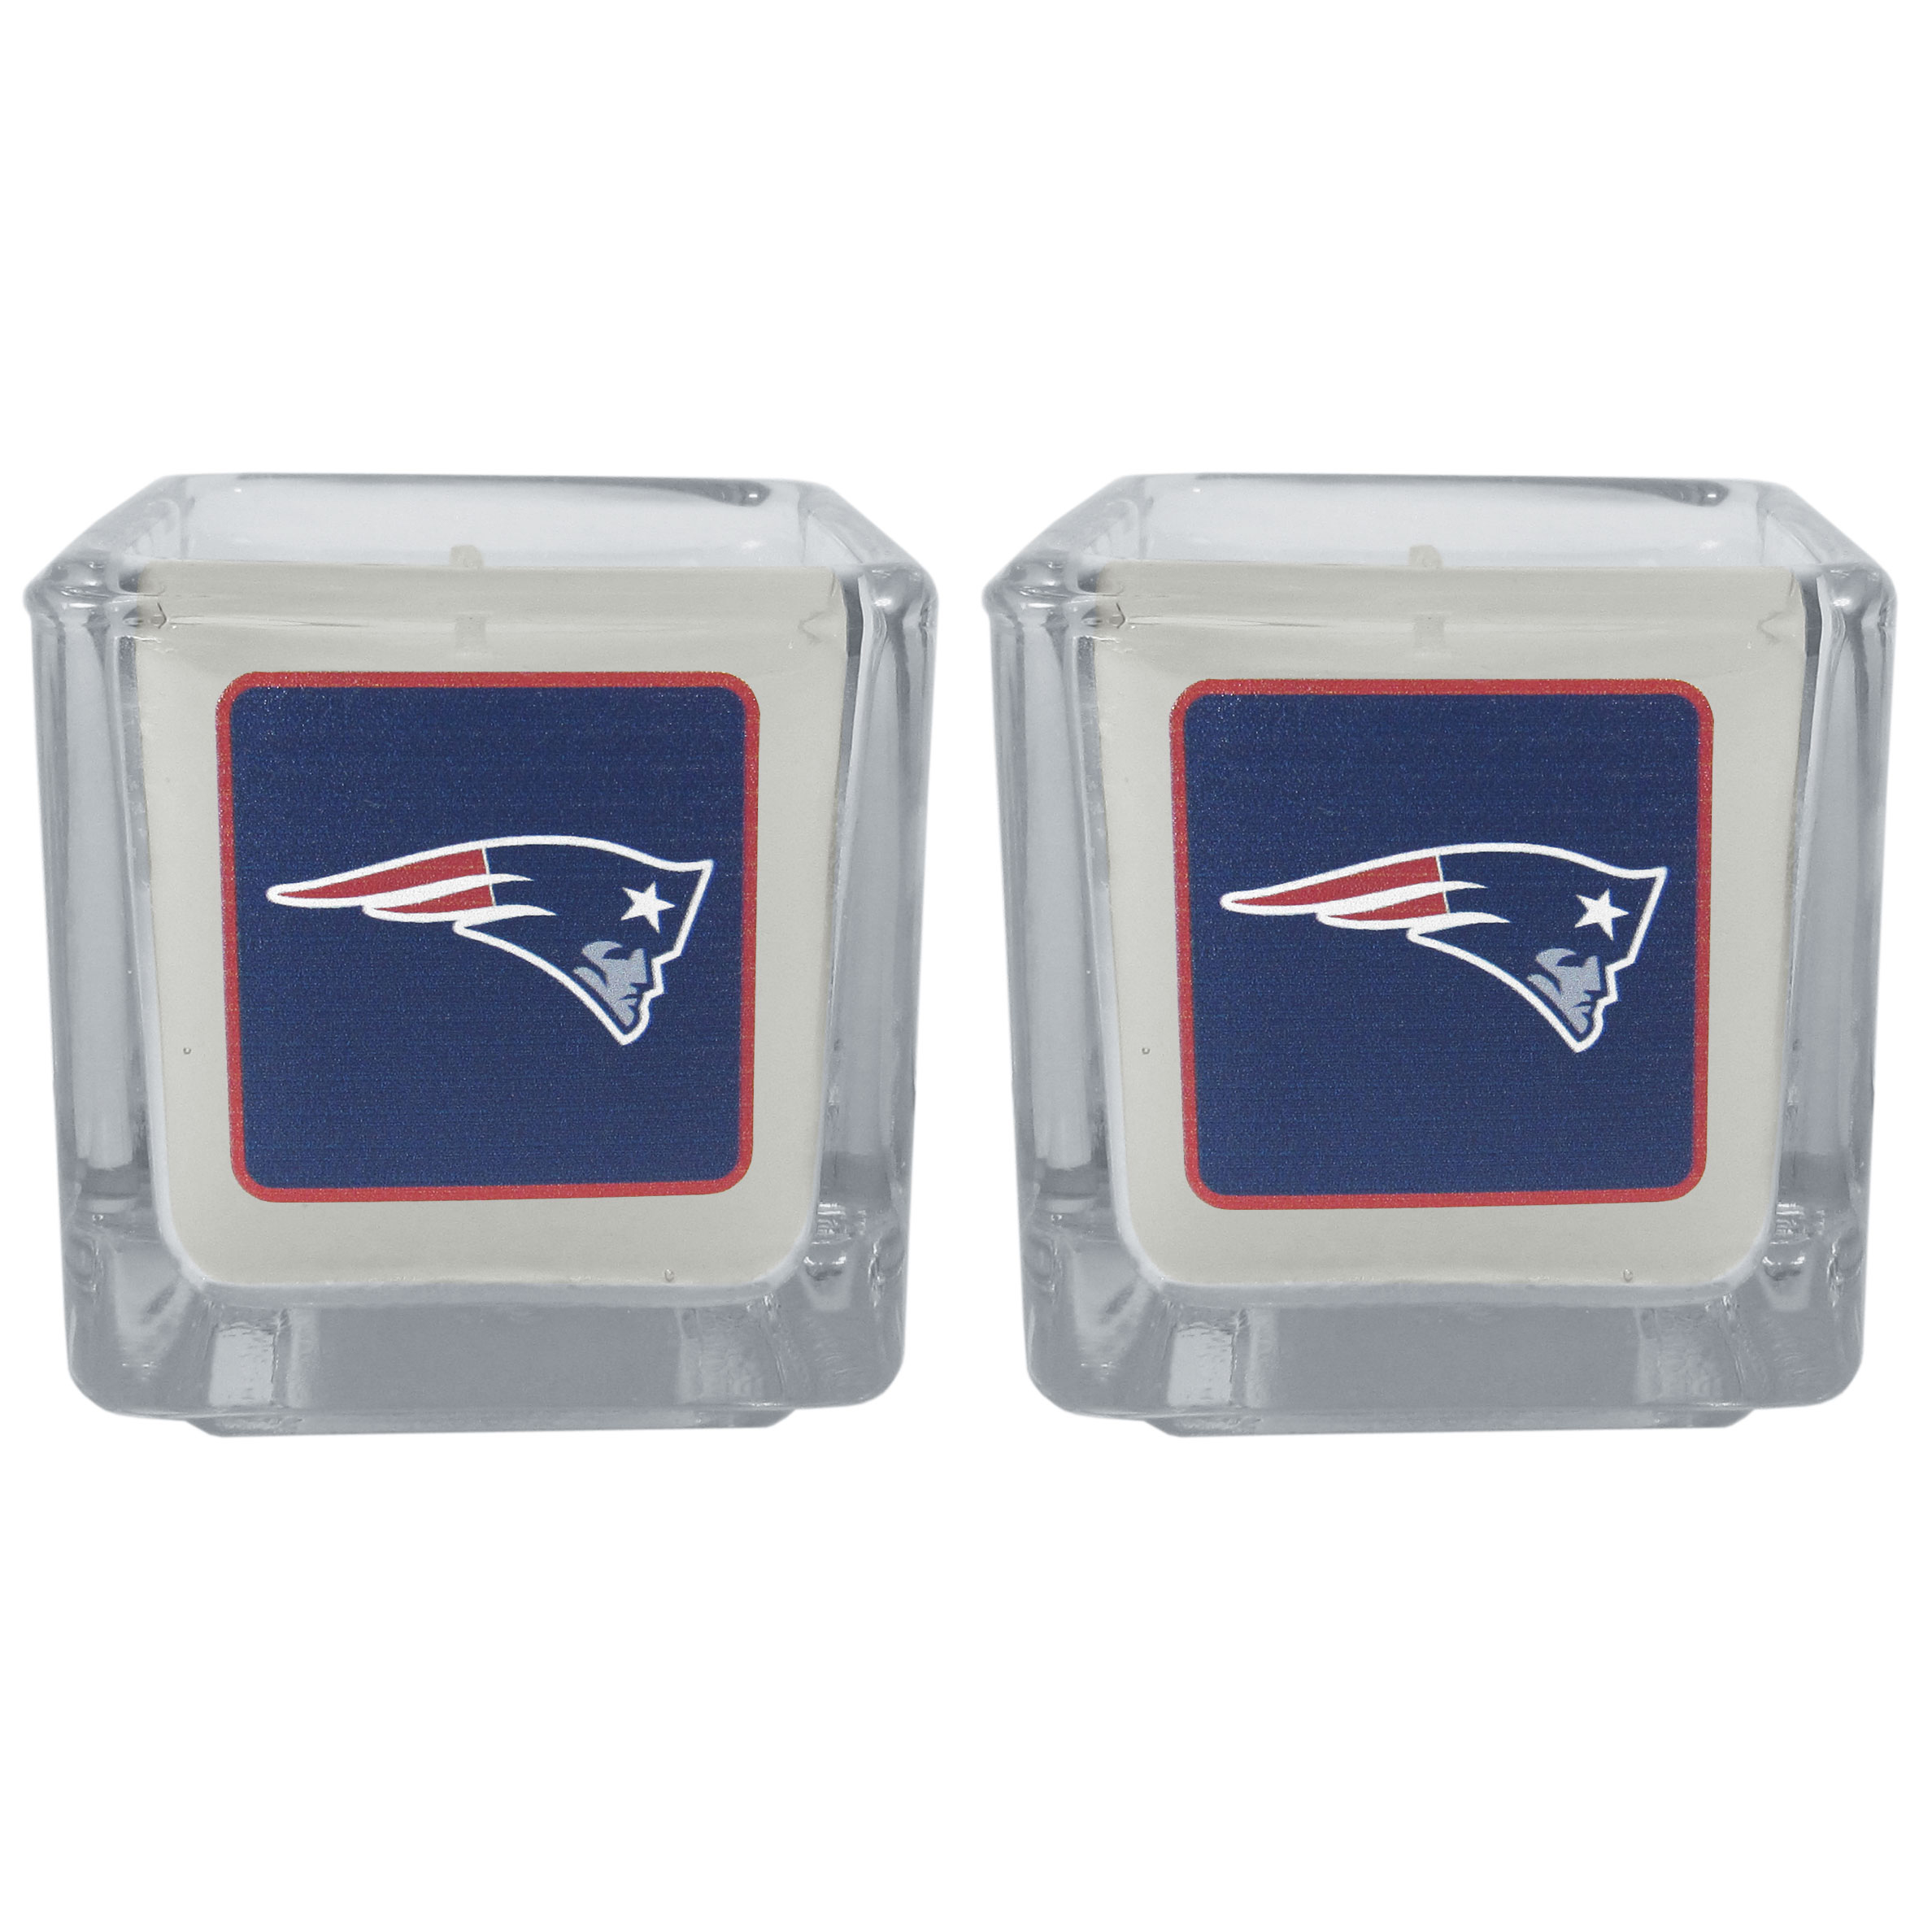 New England Patriots Graphics Candle Set - Our candle set features 2 lightly vanilla scented candles with the New England Patriots logo expertly printed on front. The candles are 2 inches tall in the votive style.